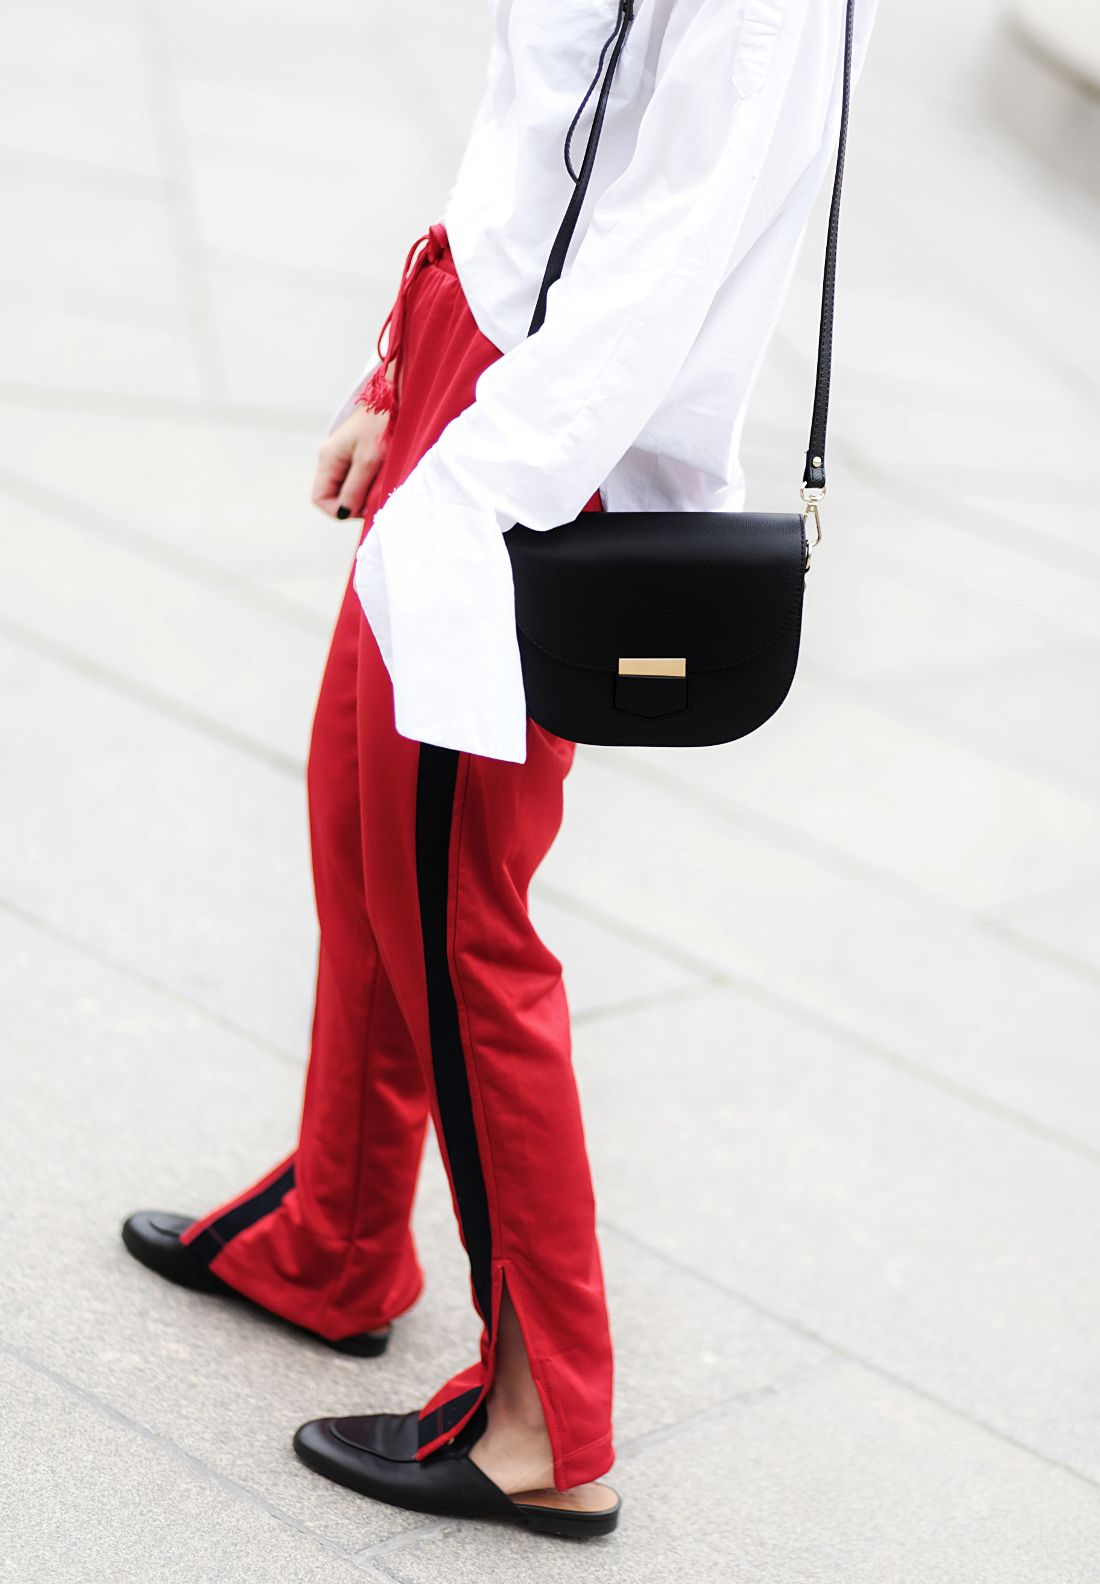 f0217074db1 HOW TO WEAR RED TRACK PANTS THE CASUAL CHIC WAY  Gucci Princetown Slipper    Statement Earrings   Oversized sleeves blouse.